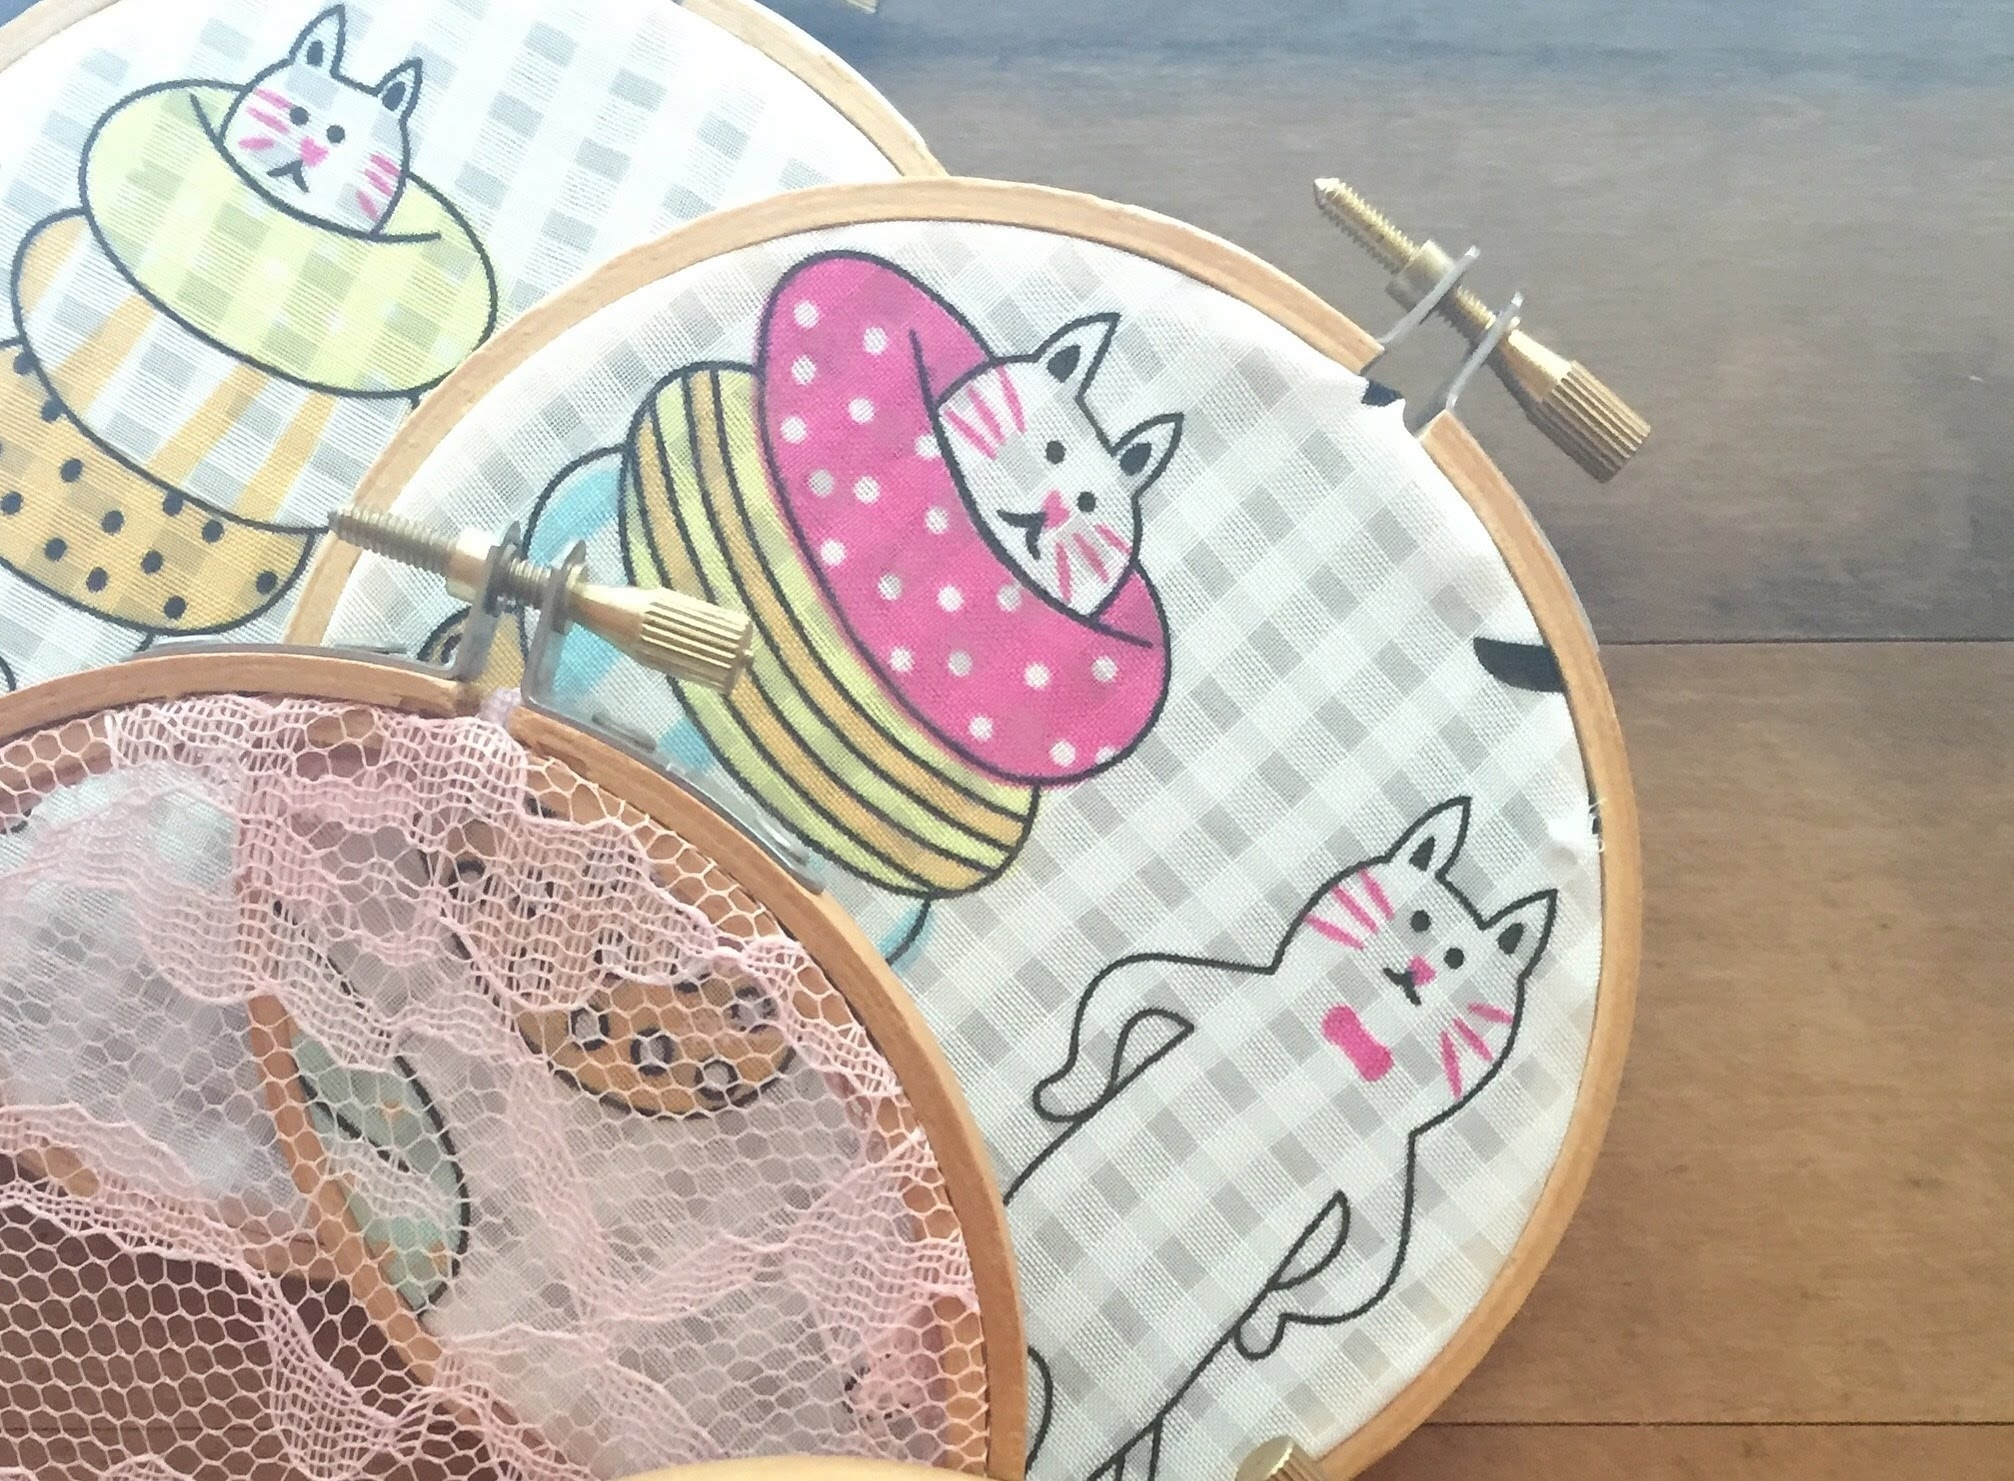 Diy – Fabric Embroidery Hoop Wall Art | Easy & Simple Tutorial For Most Current Fabric Hoop Wall Art (View 6 of 15)